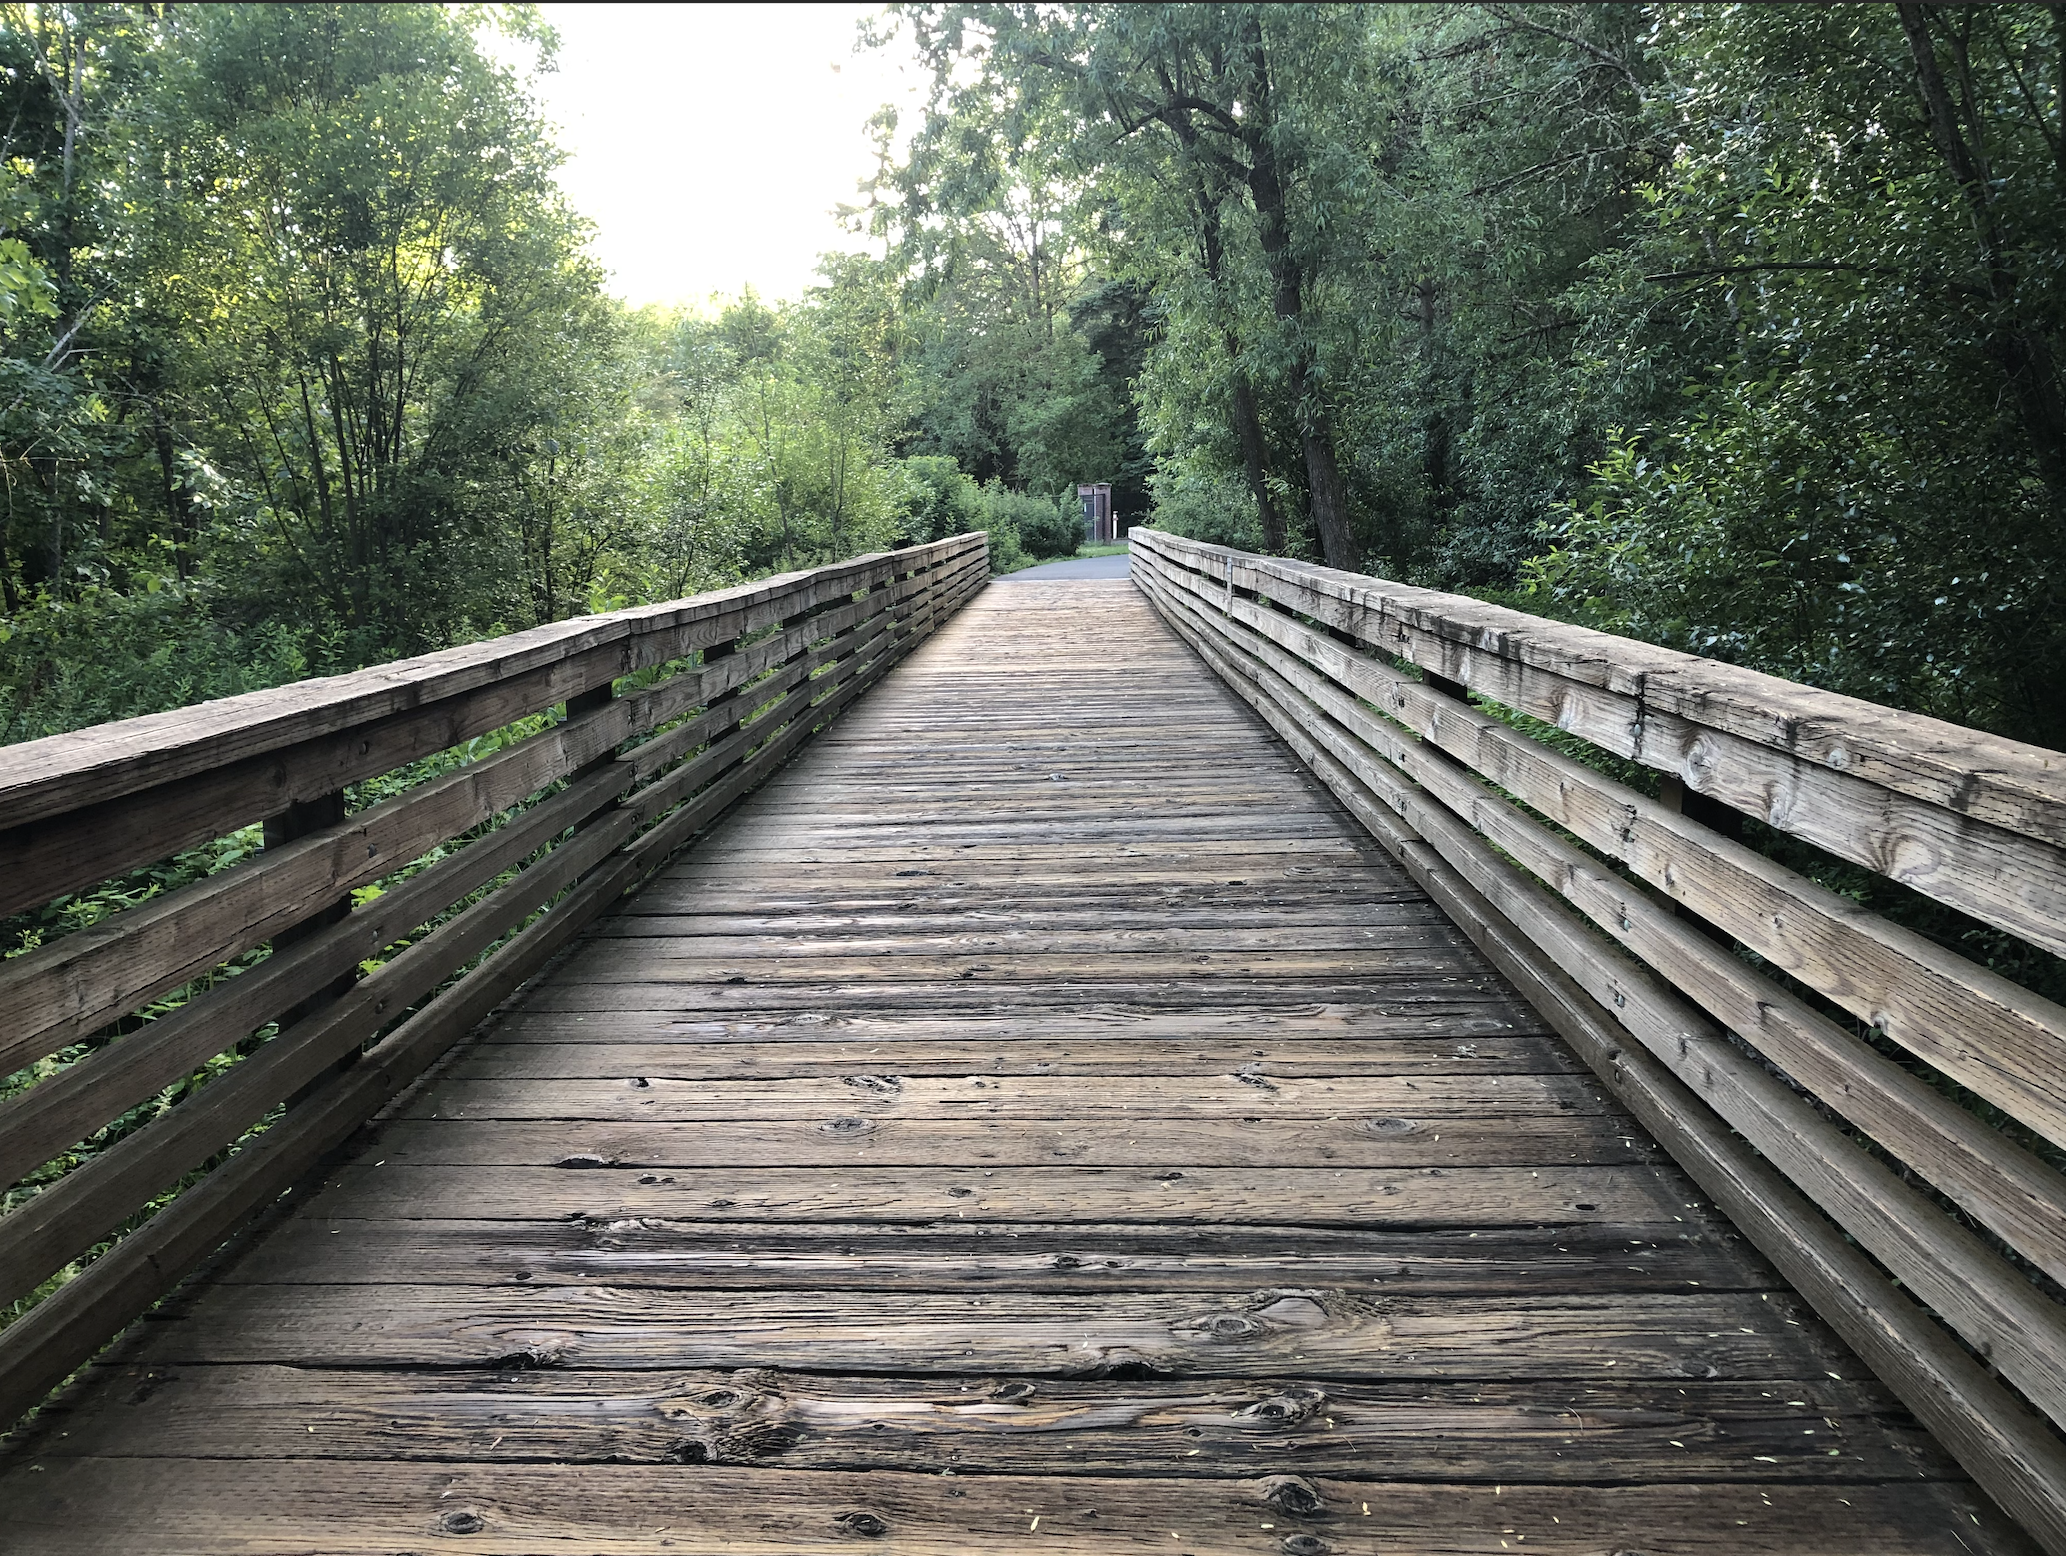 Greenery and bridges; tACTful transitions from the ACT on 2021 series from Linda Cohen Consulting